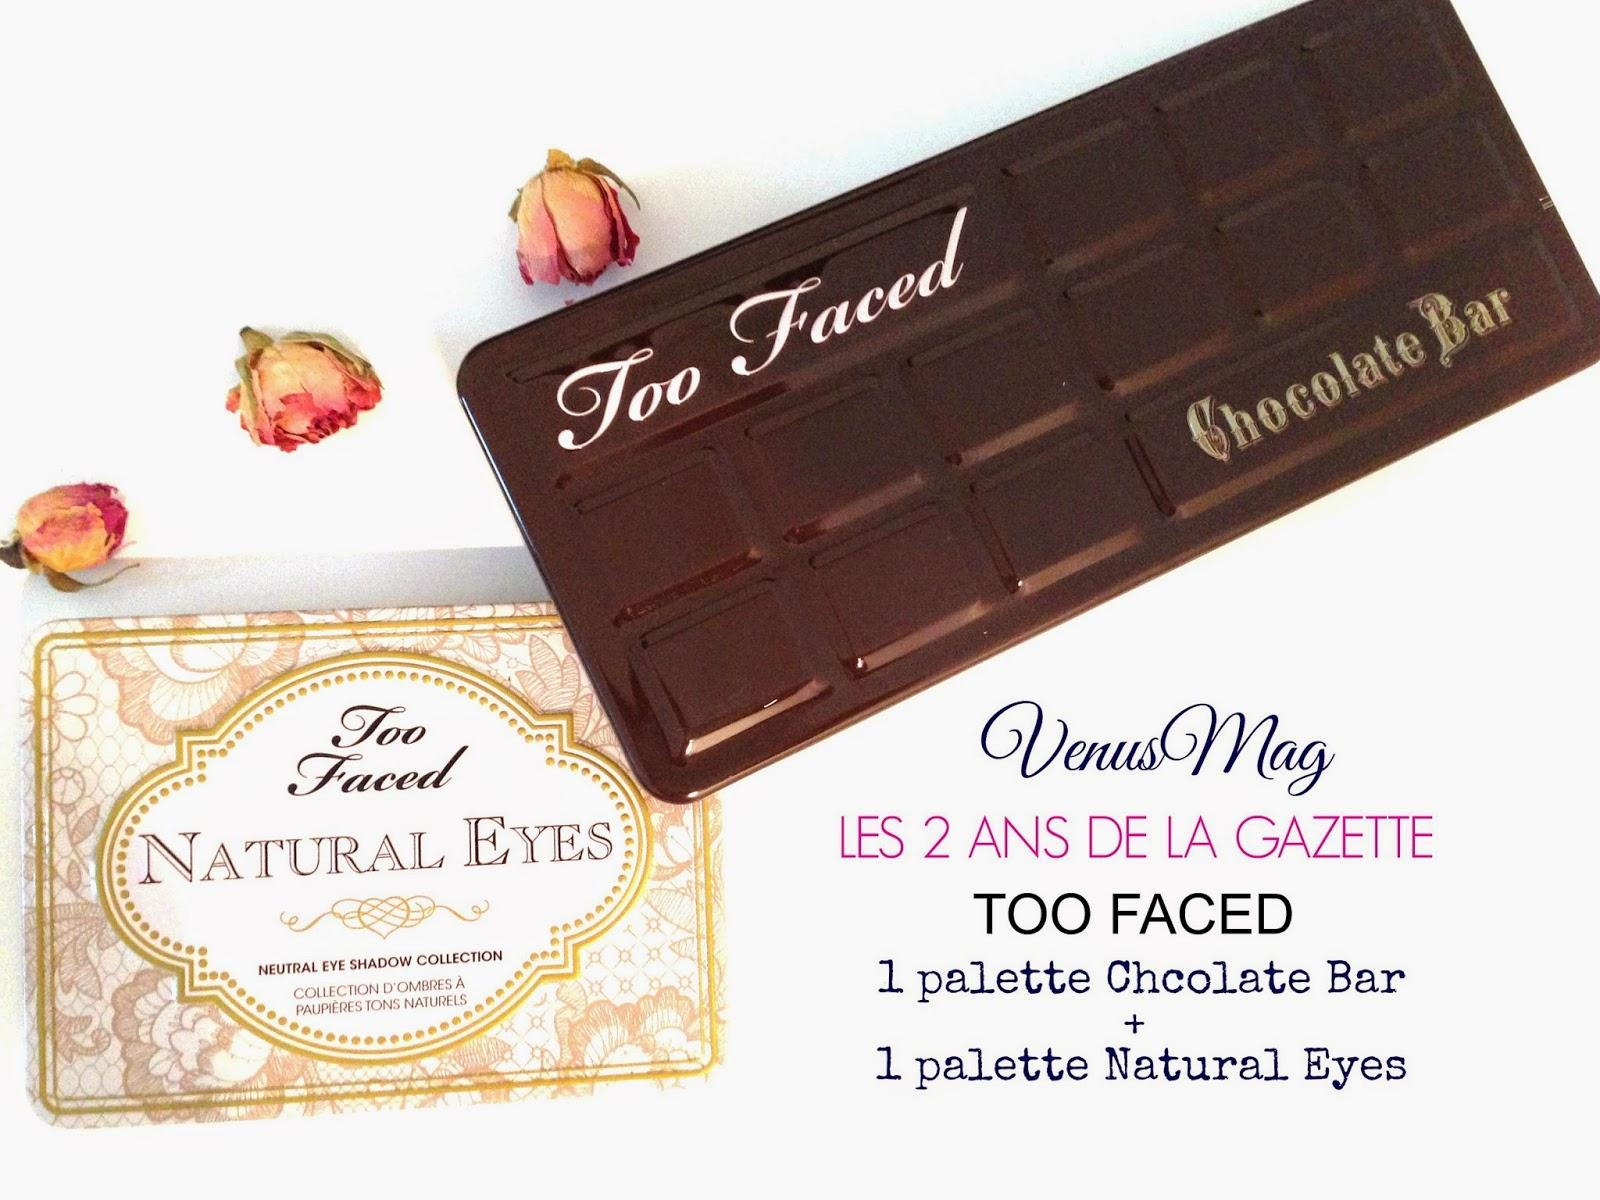 [2 ans de la gazette] - 1 palette Chocolate Bar et 1 palette Natural Eyes de Too Faced